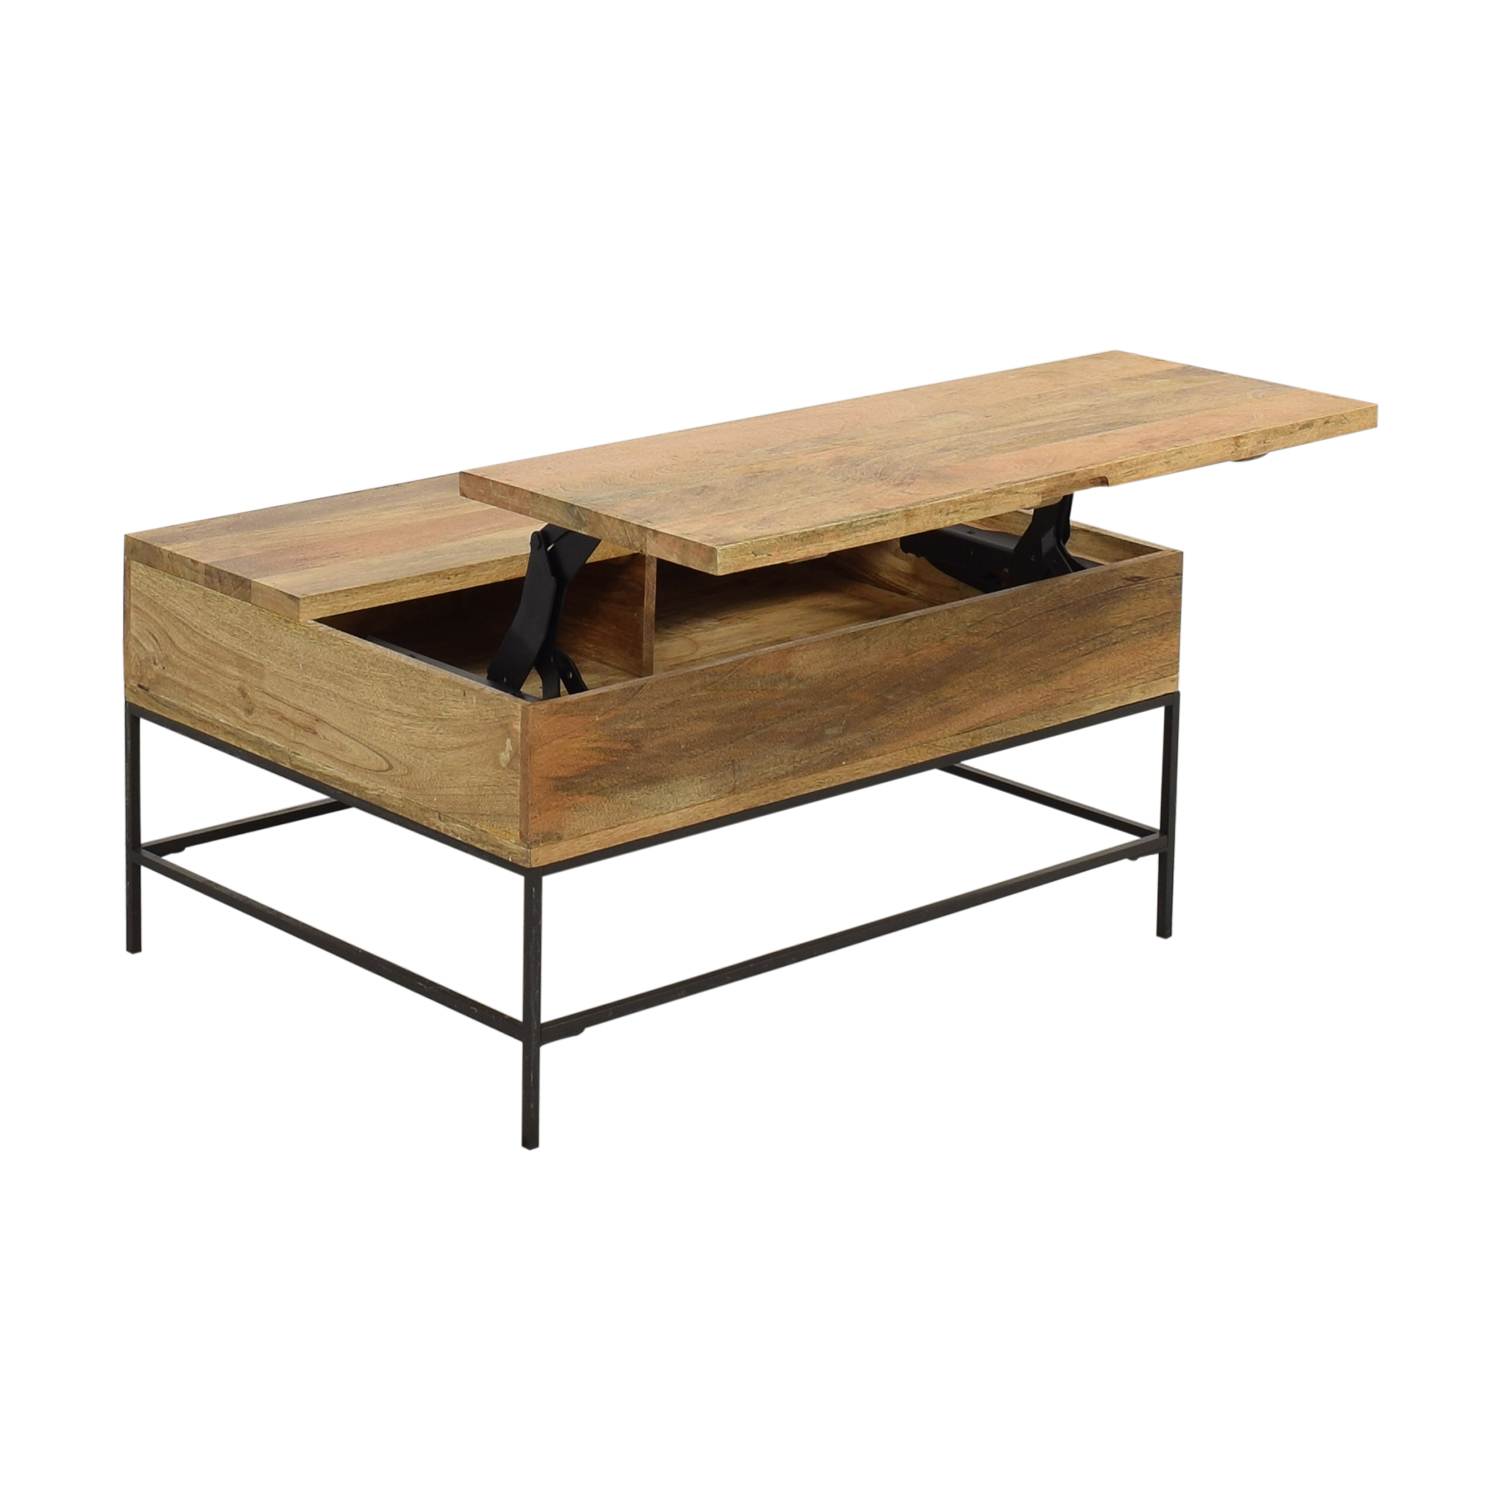 West Elm West Elm Industrial Storage Coffee Table Small Coffee Tables